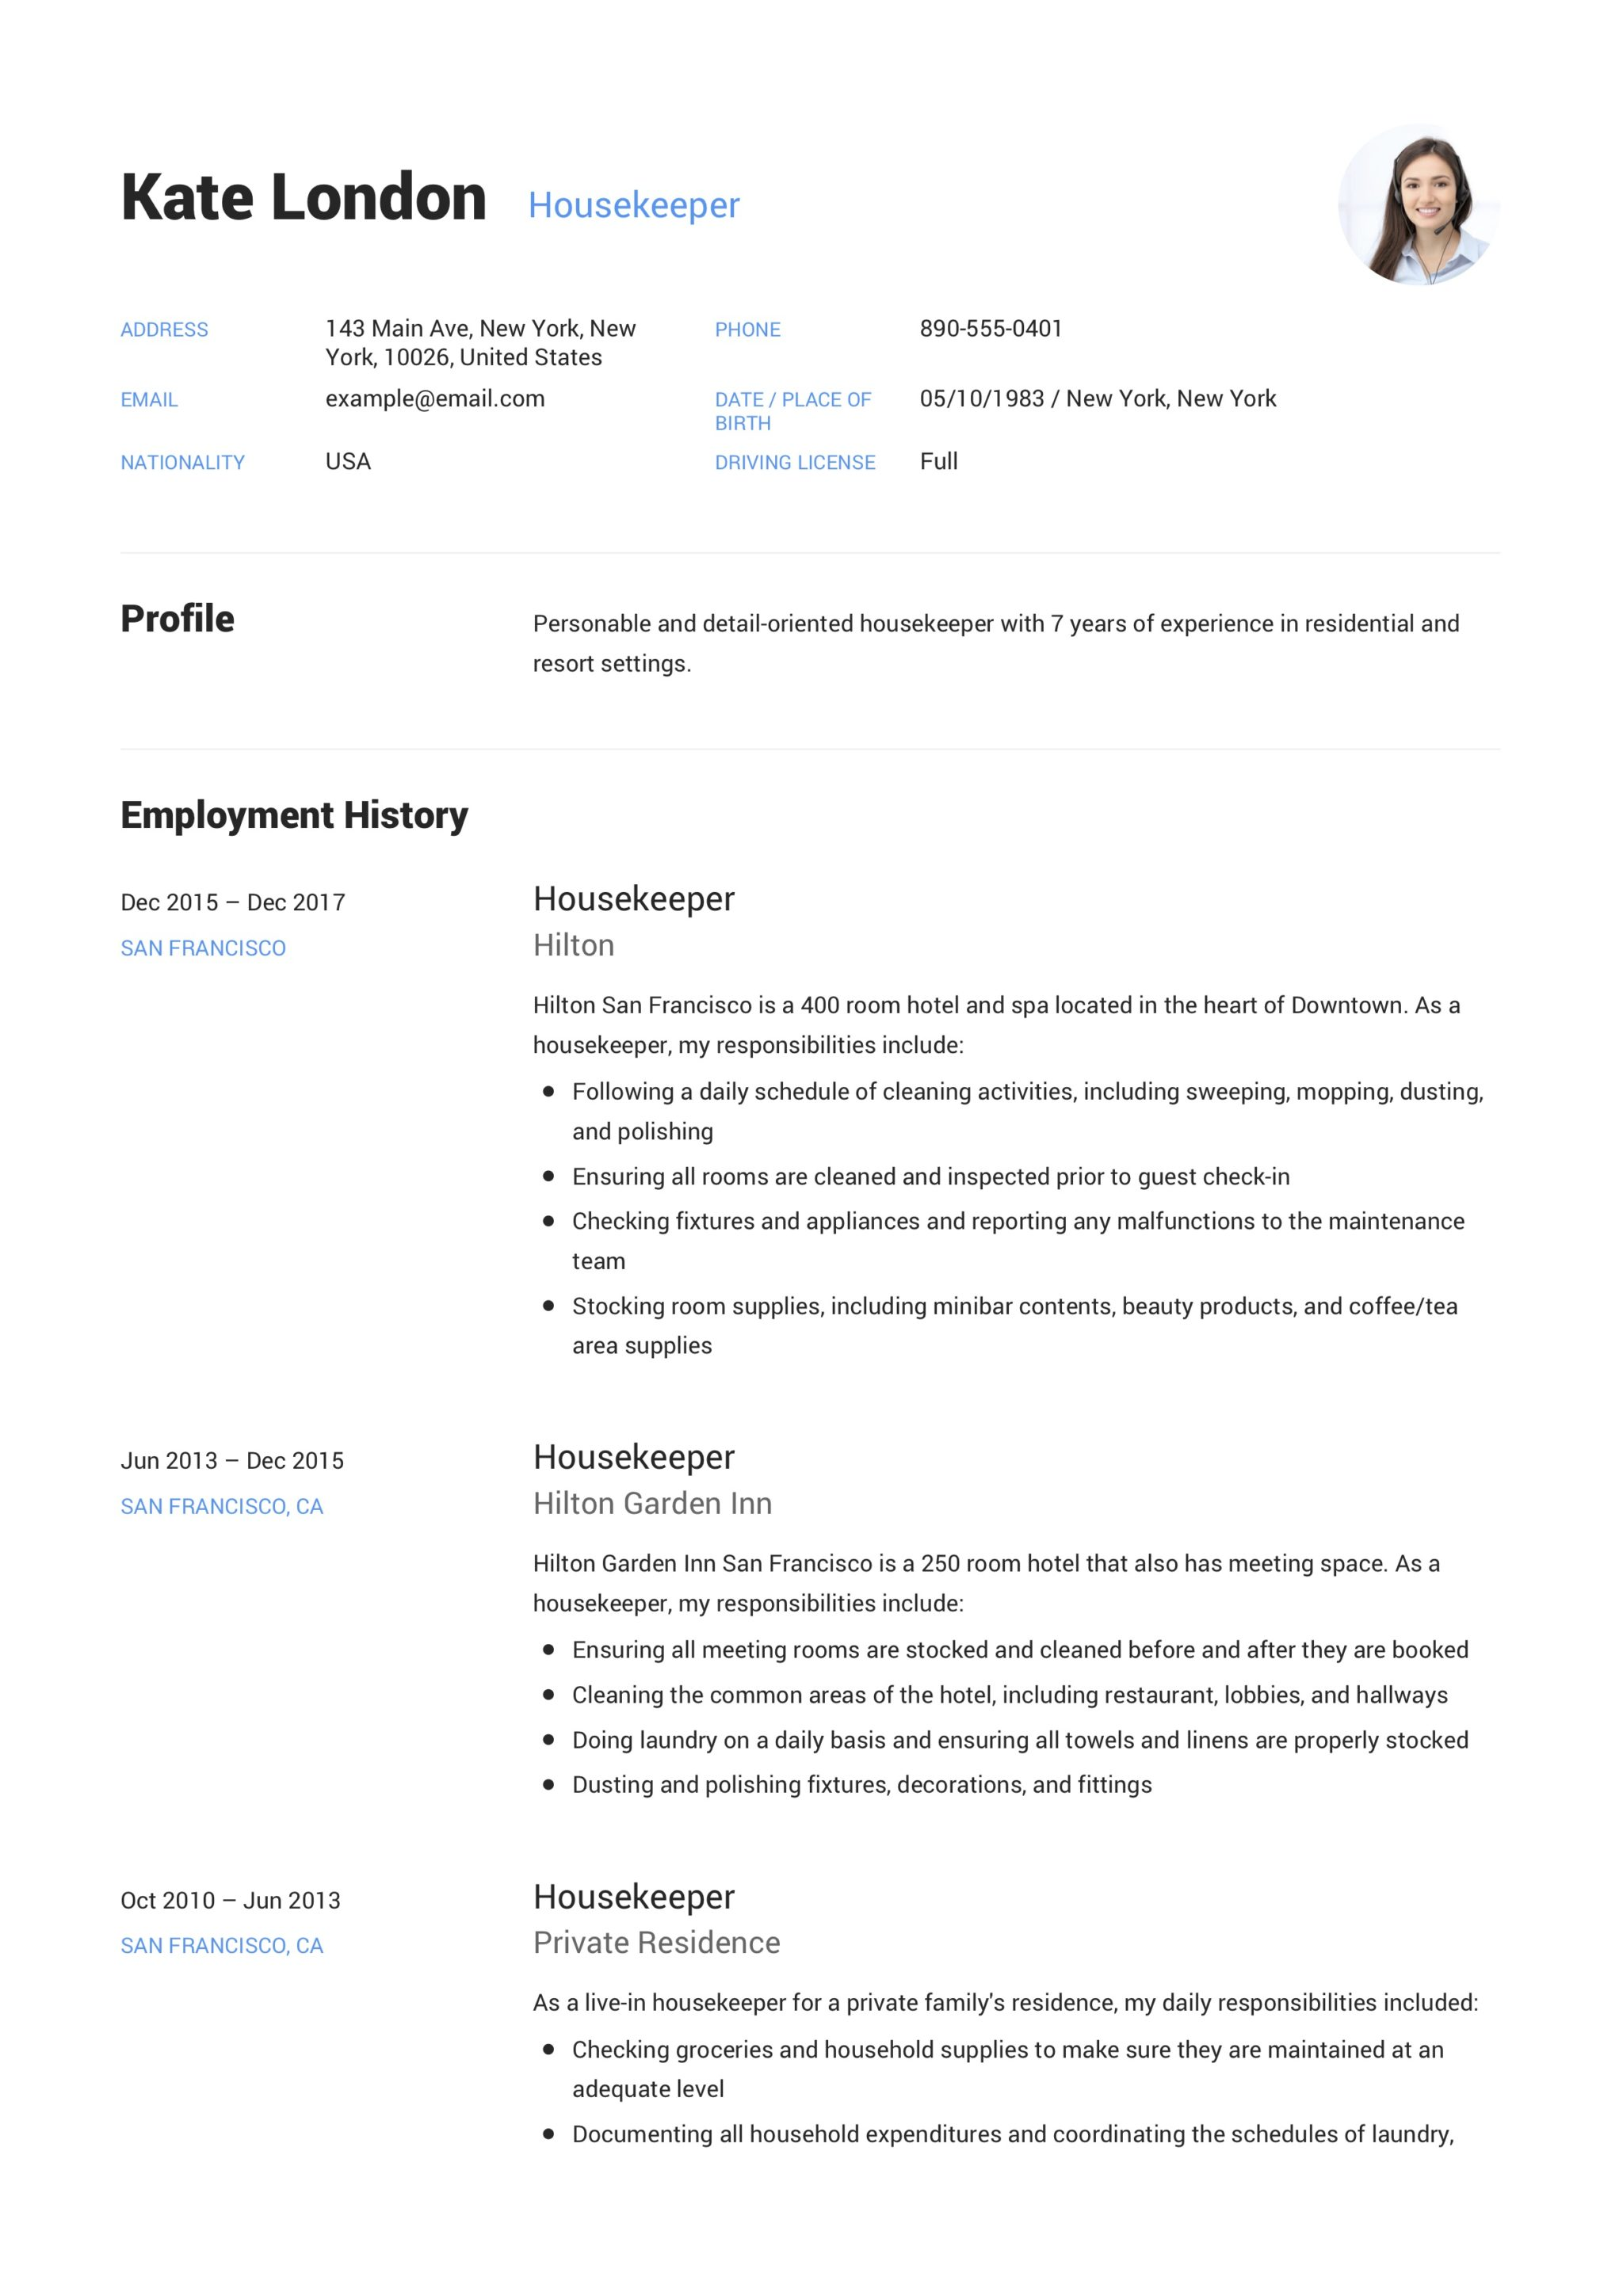 resume guide  housekpeer   12 resume samples